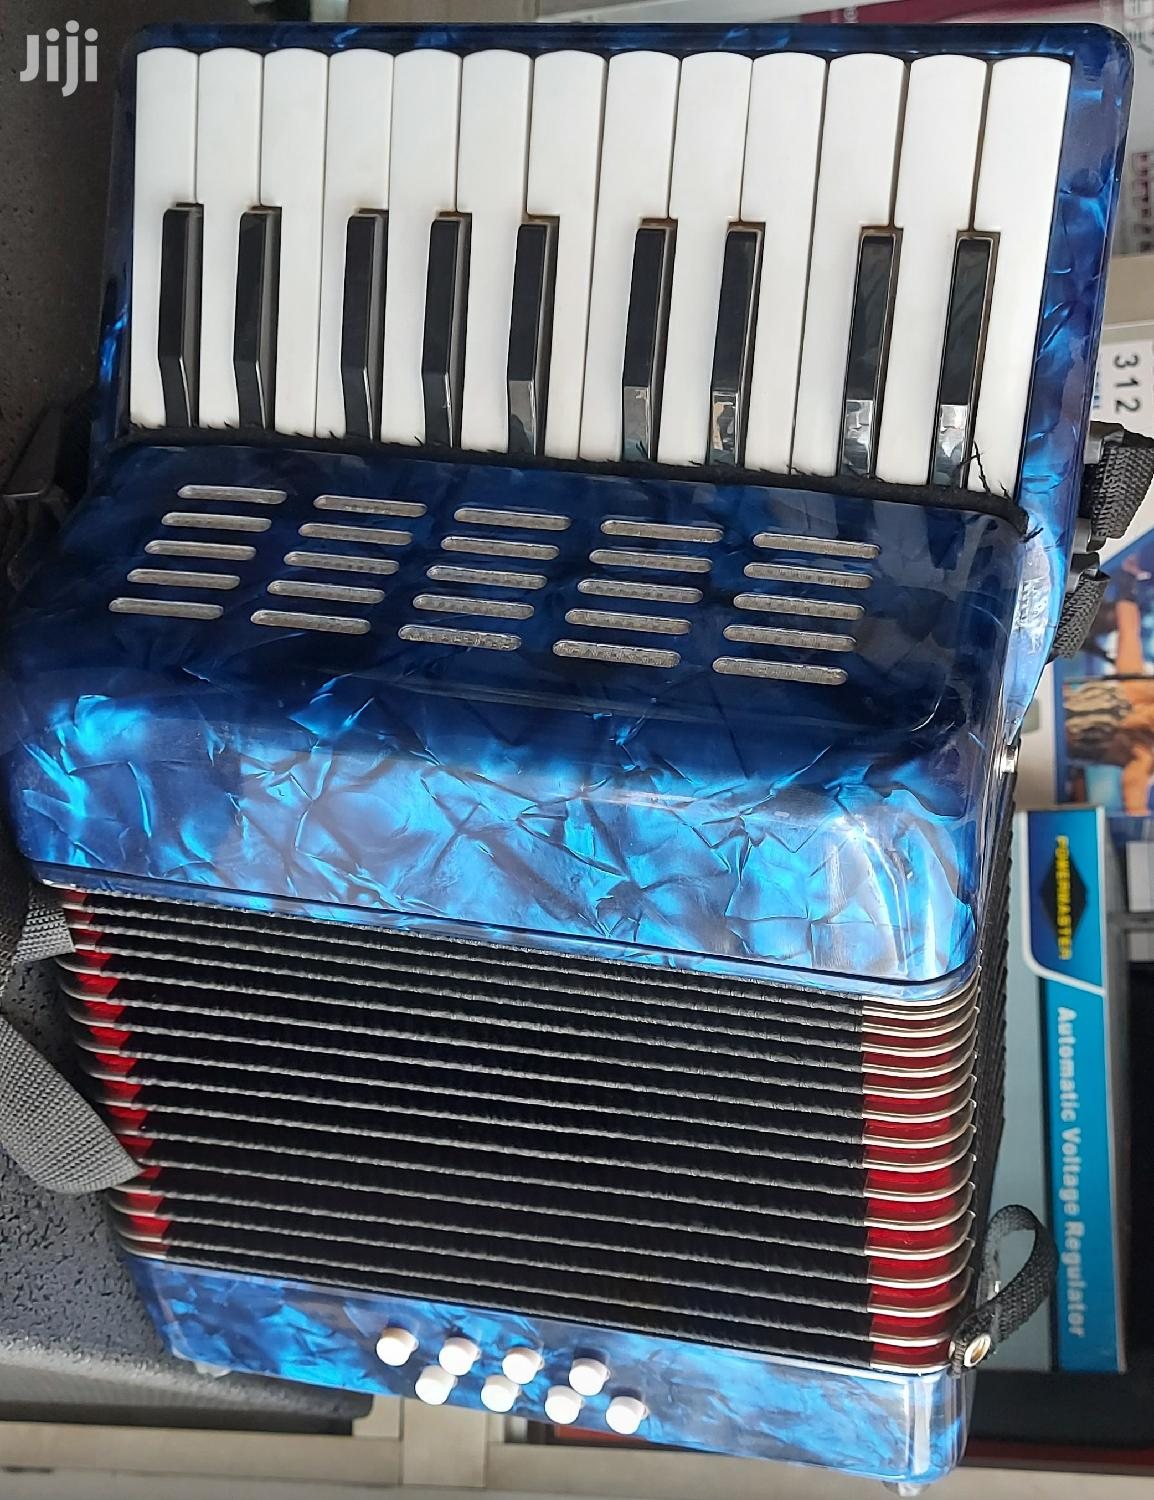 Accordion 8bass With 22 Tremble | Musical Instruments & Gear for sale in Nairobi Central, Nairobi, Kenya